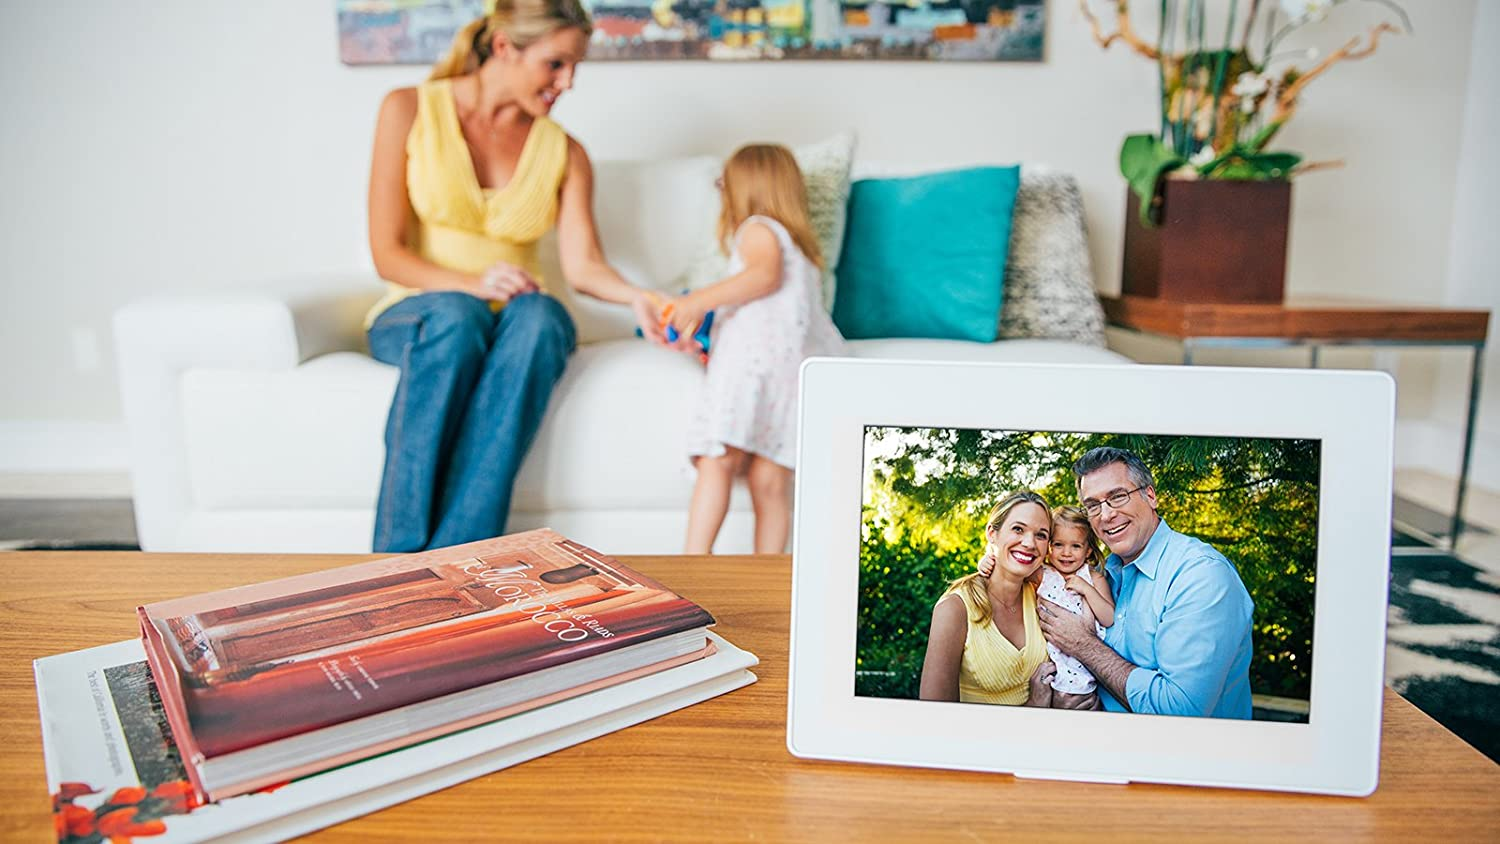 iPhone /& Android app Touch-Screen 10-inch WiFi Cloud Digital Picture Frame White - 65,000 Photos PhotoSpring Plays Video and Photo Slideshows 64GB Battery HD IPS Display